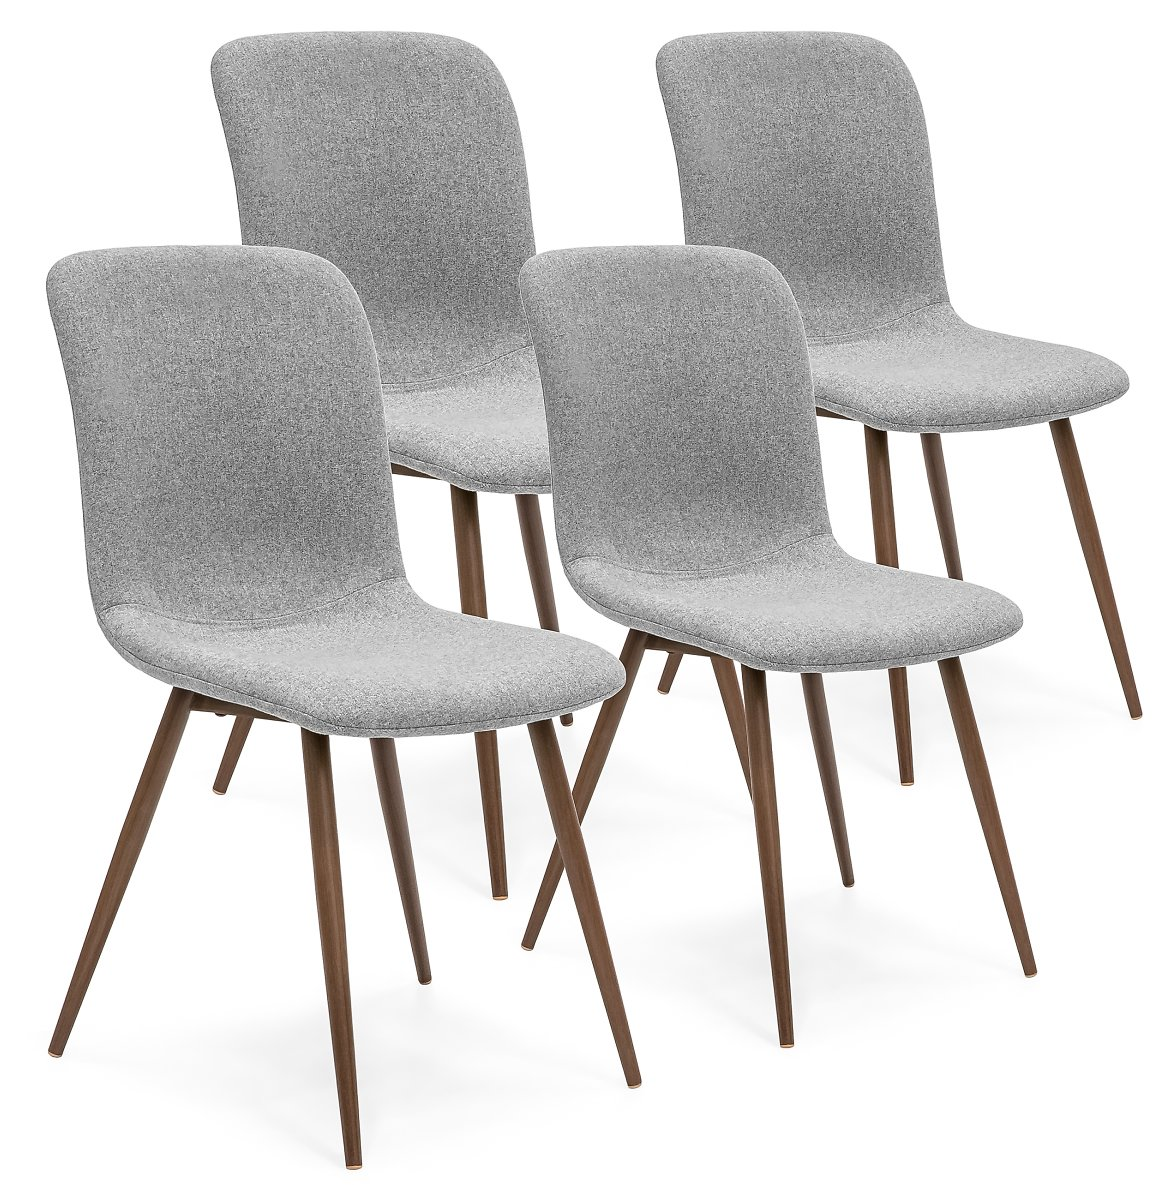 Best Choice Products Polyester Upholstered Mid-Century Modern Dining Room Chairs, Set of 4, Gray